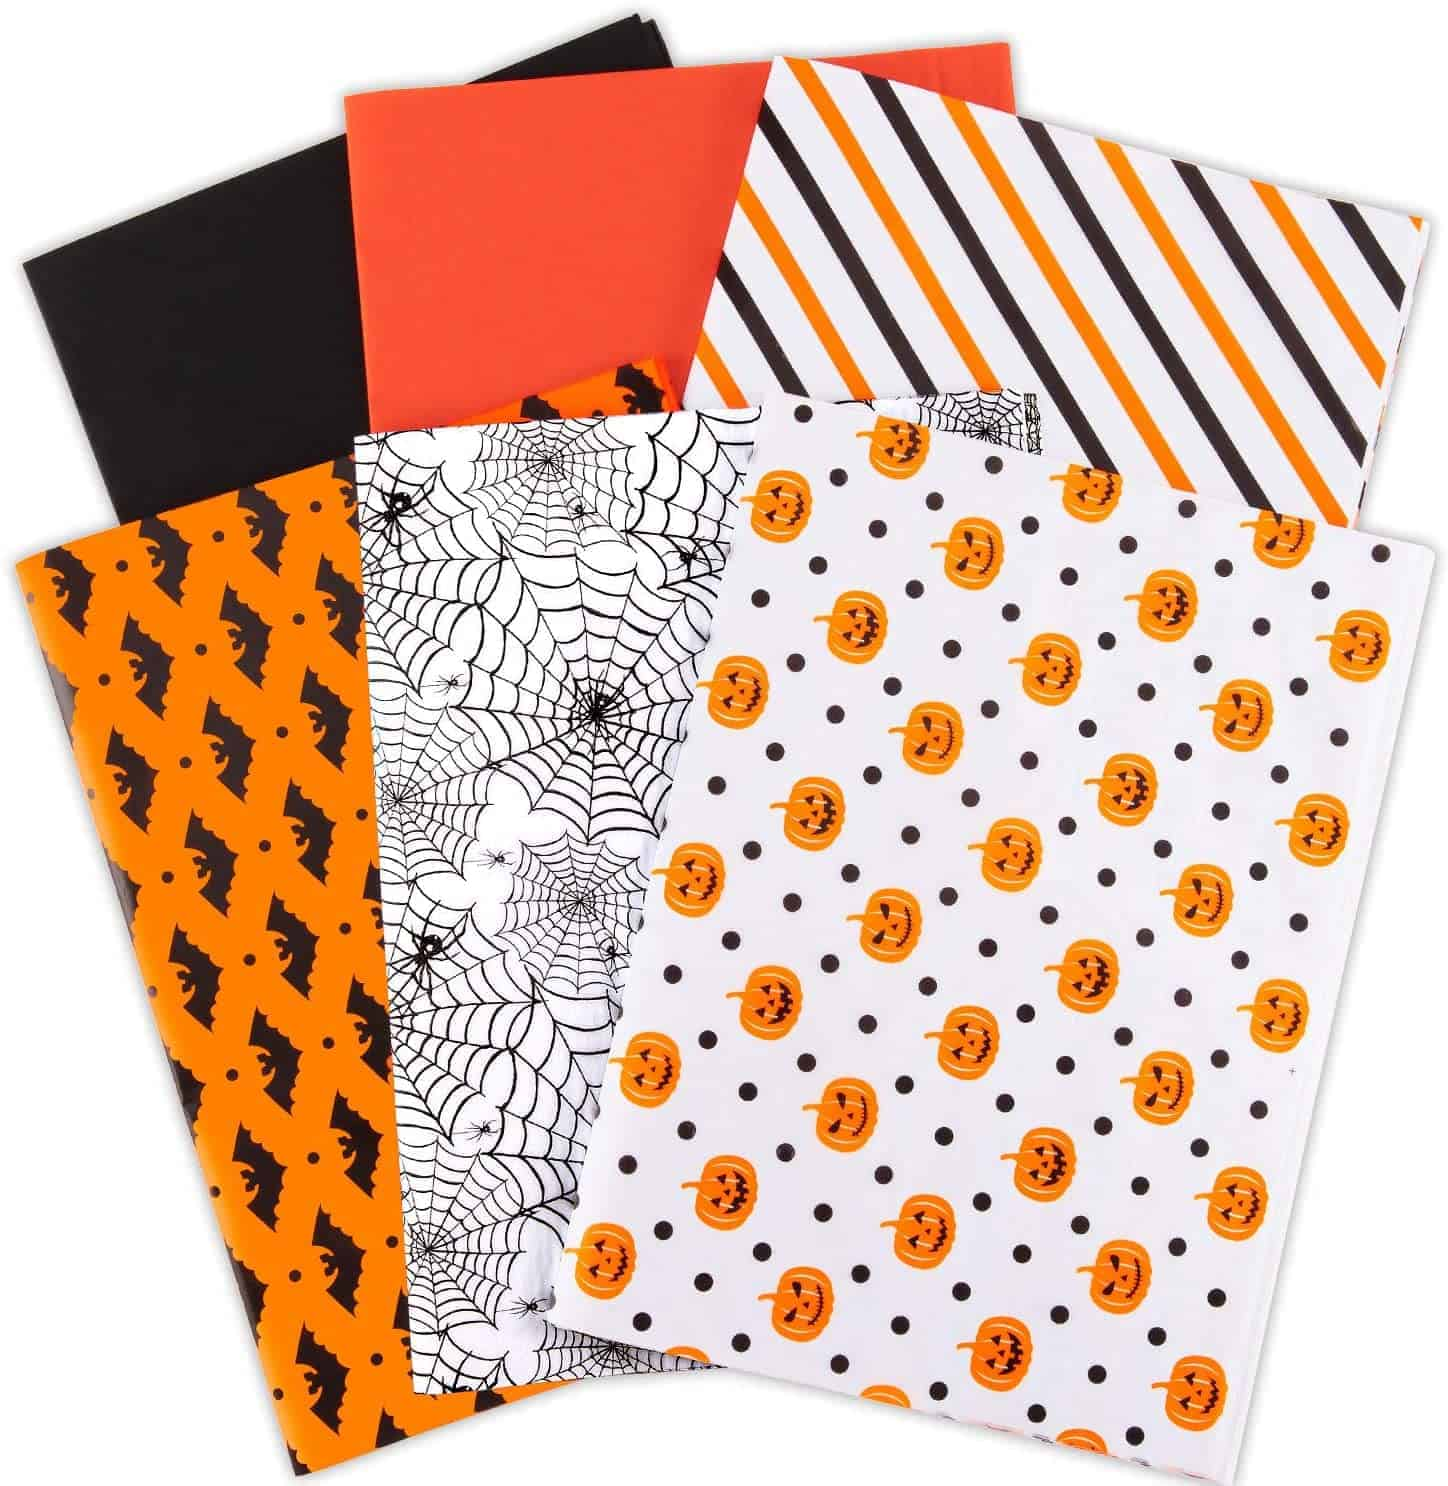 120 Sheets Halloween Tissue Paper in 6 Designs